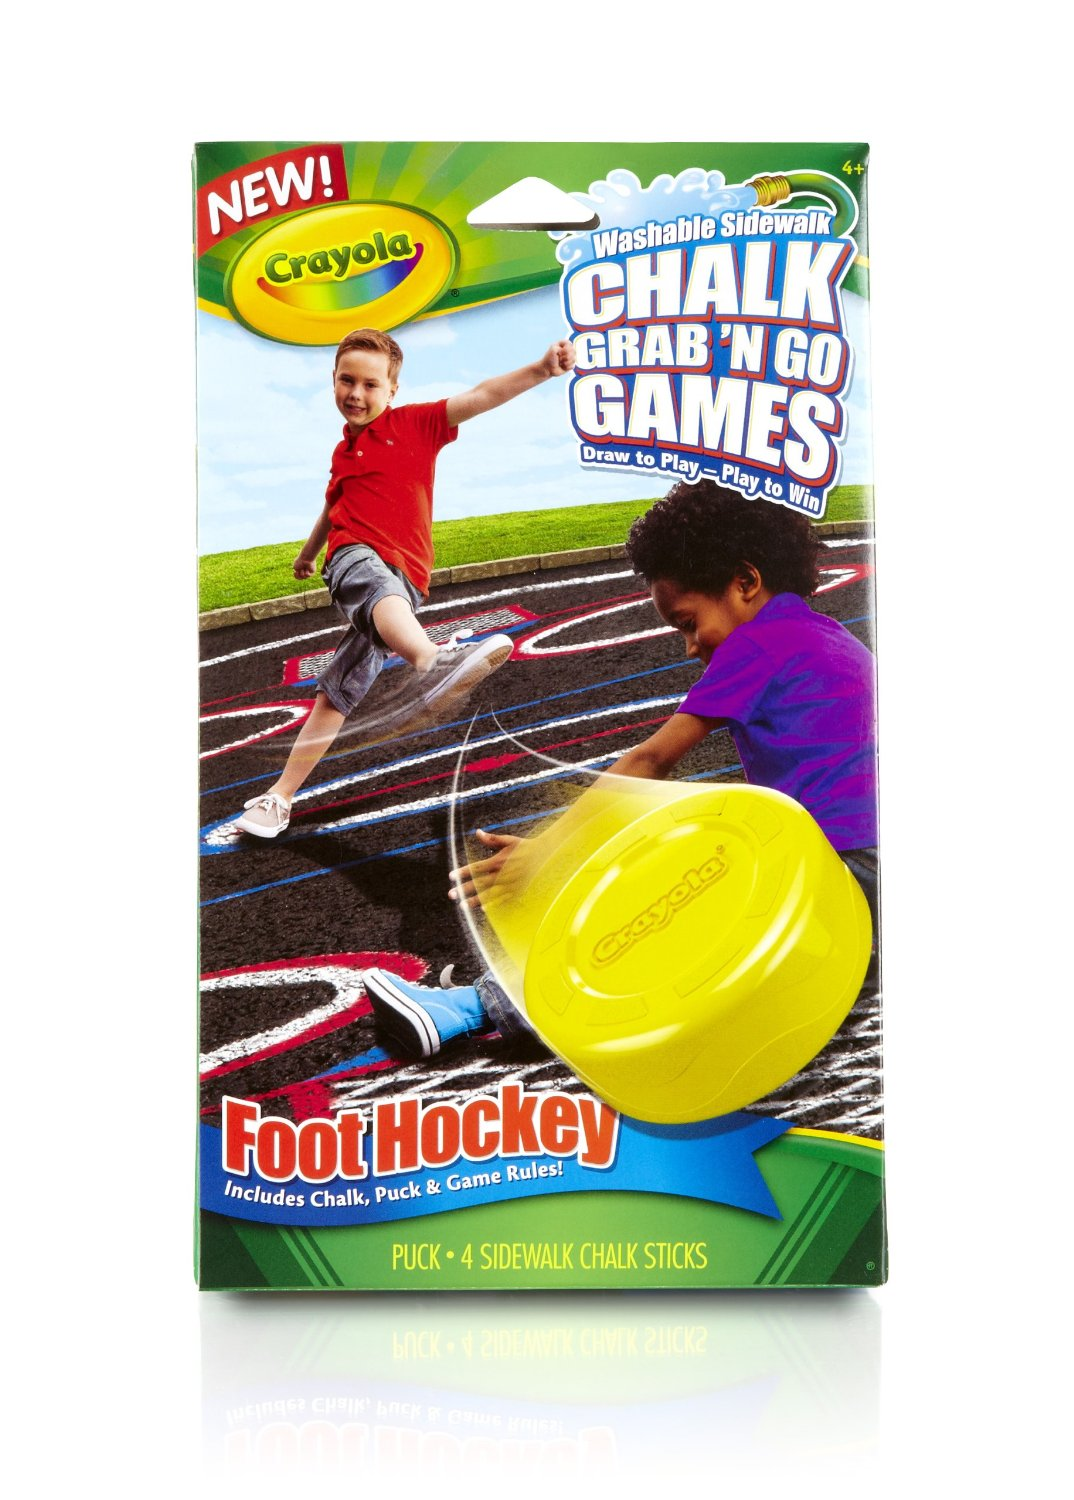 Crayola Foot Hockey Chalk Grab and Go Games, sidewalk chalk, outdoor games for kids, crayola,